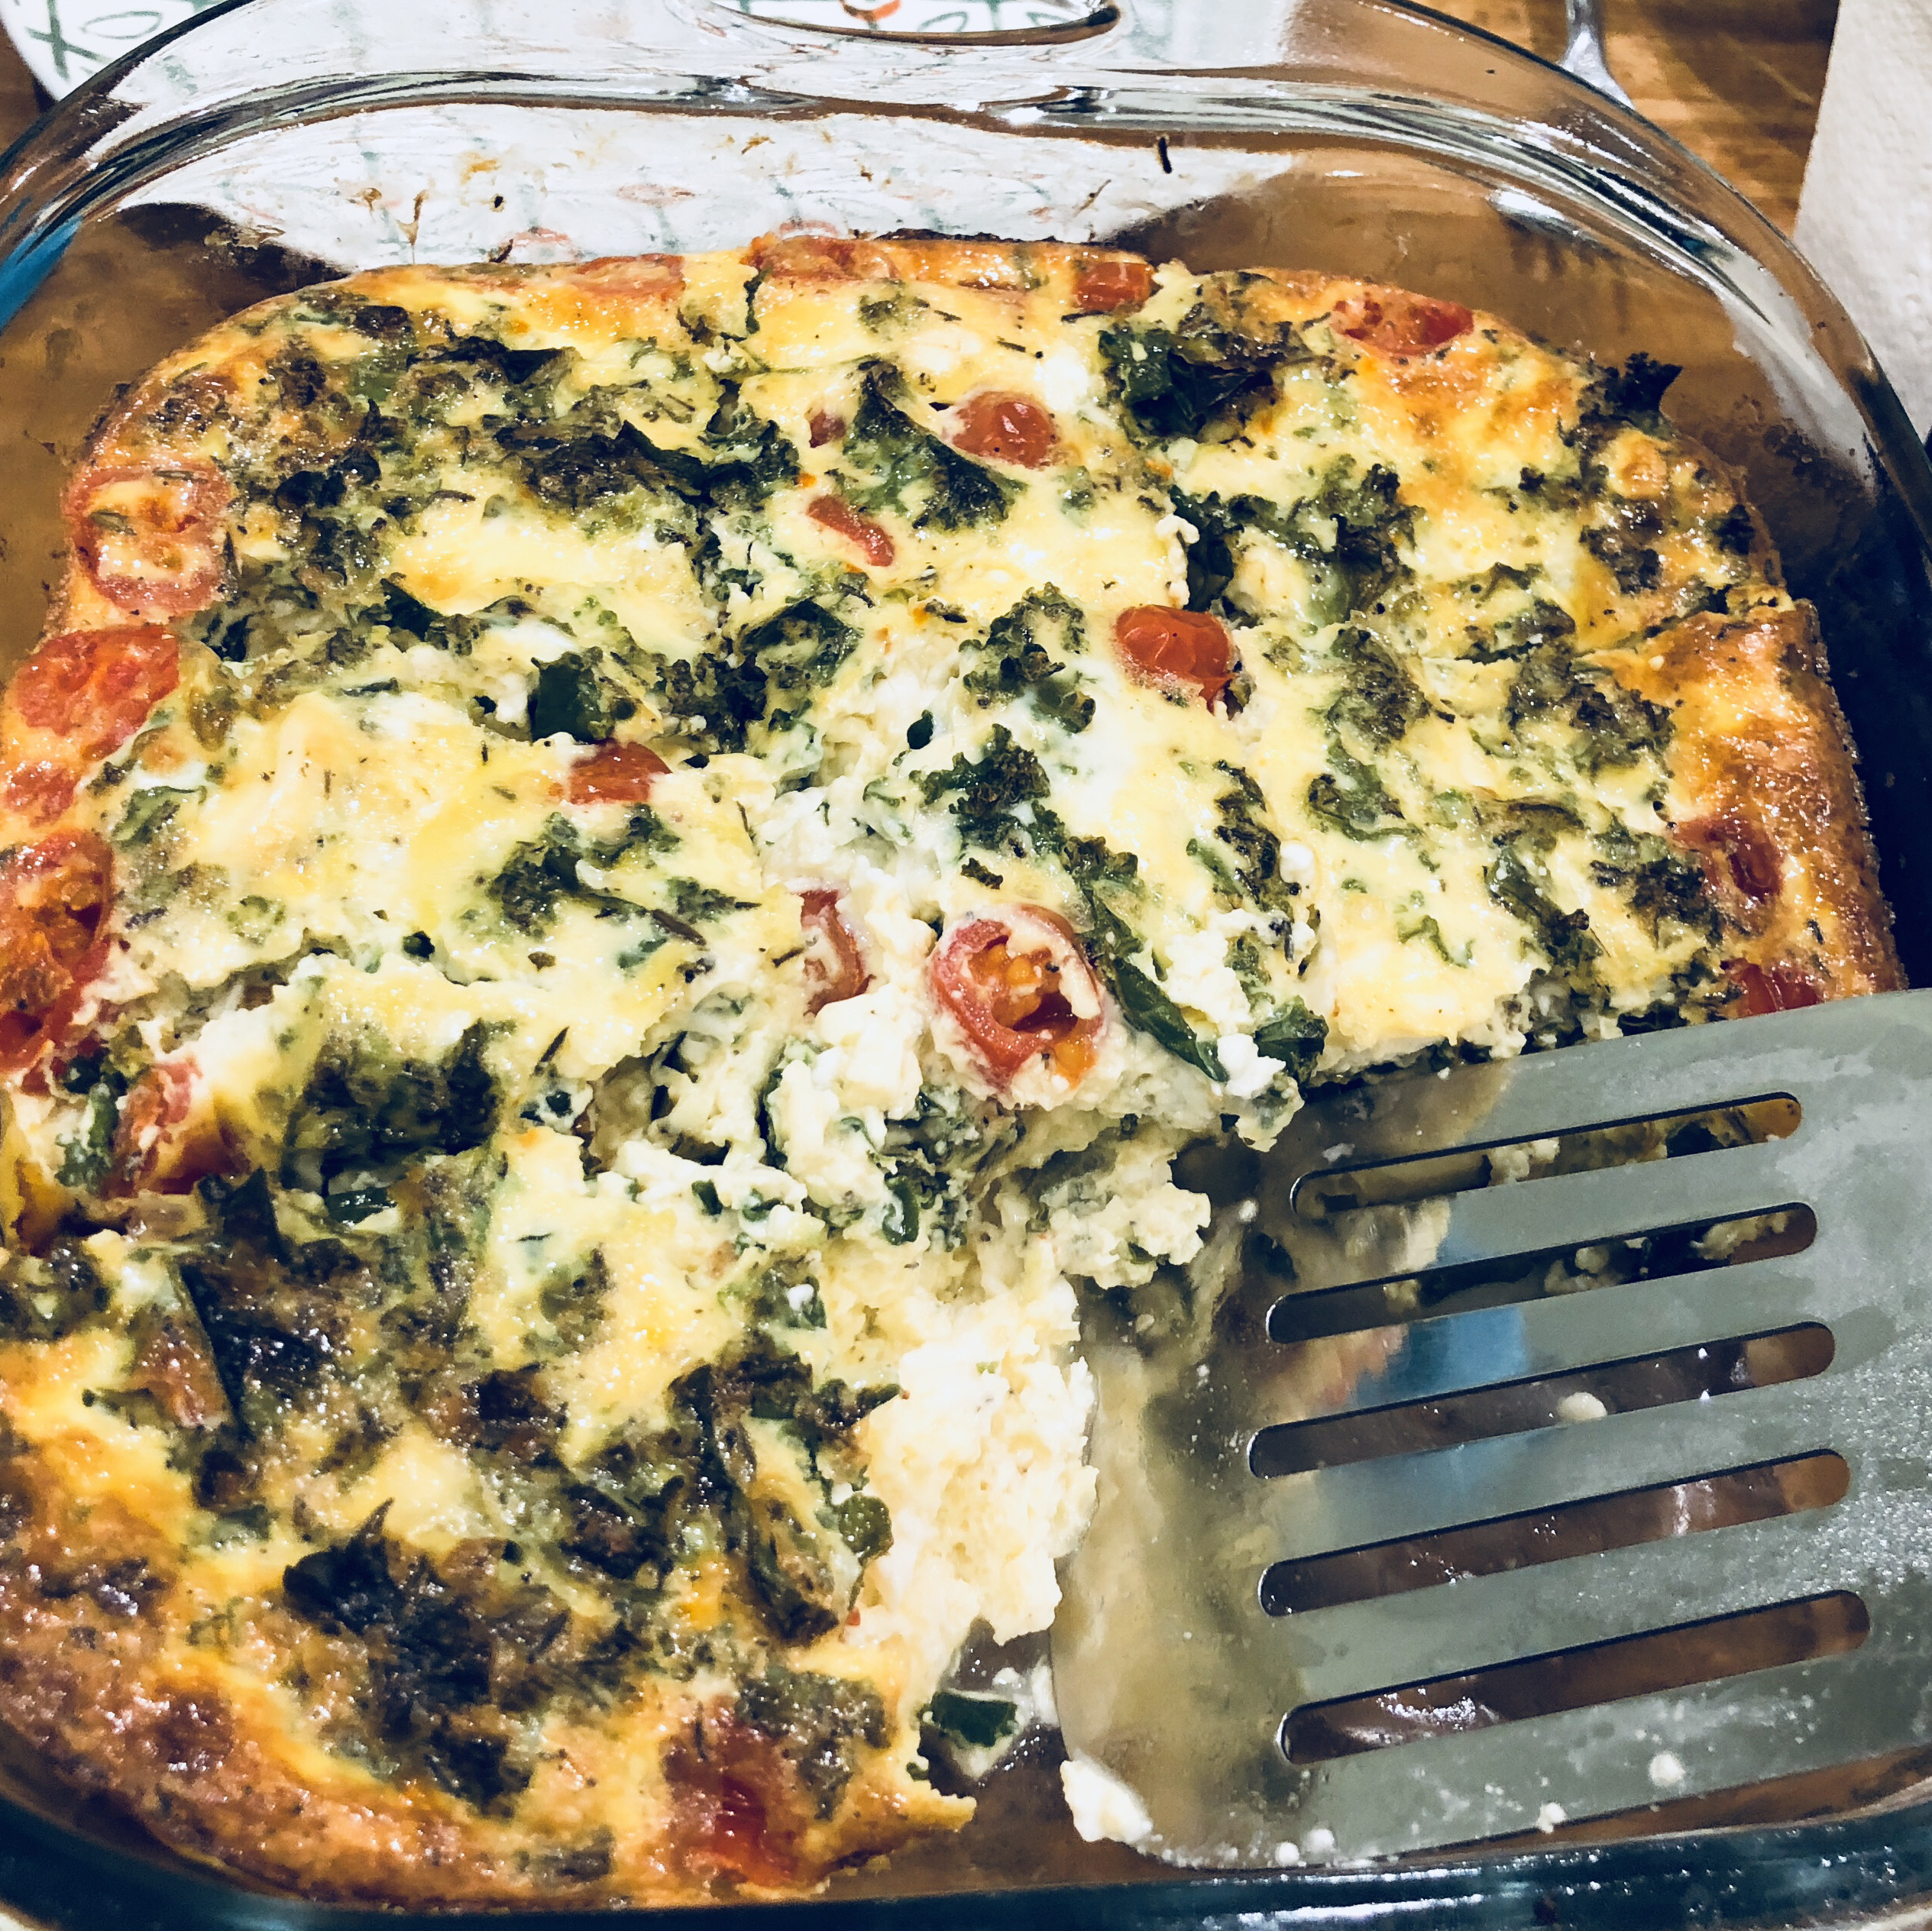 Oven Baked Omelet with Feta and Tomatoes BelovedApple